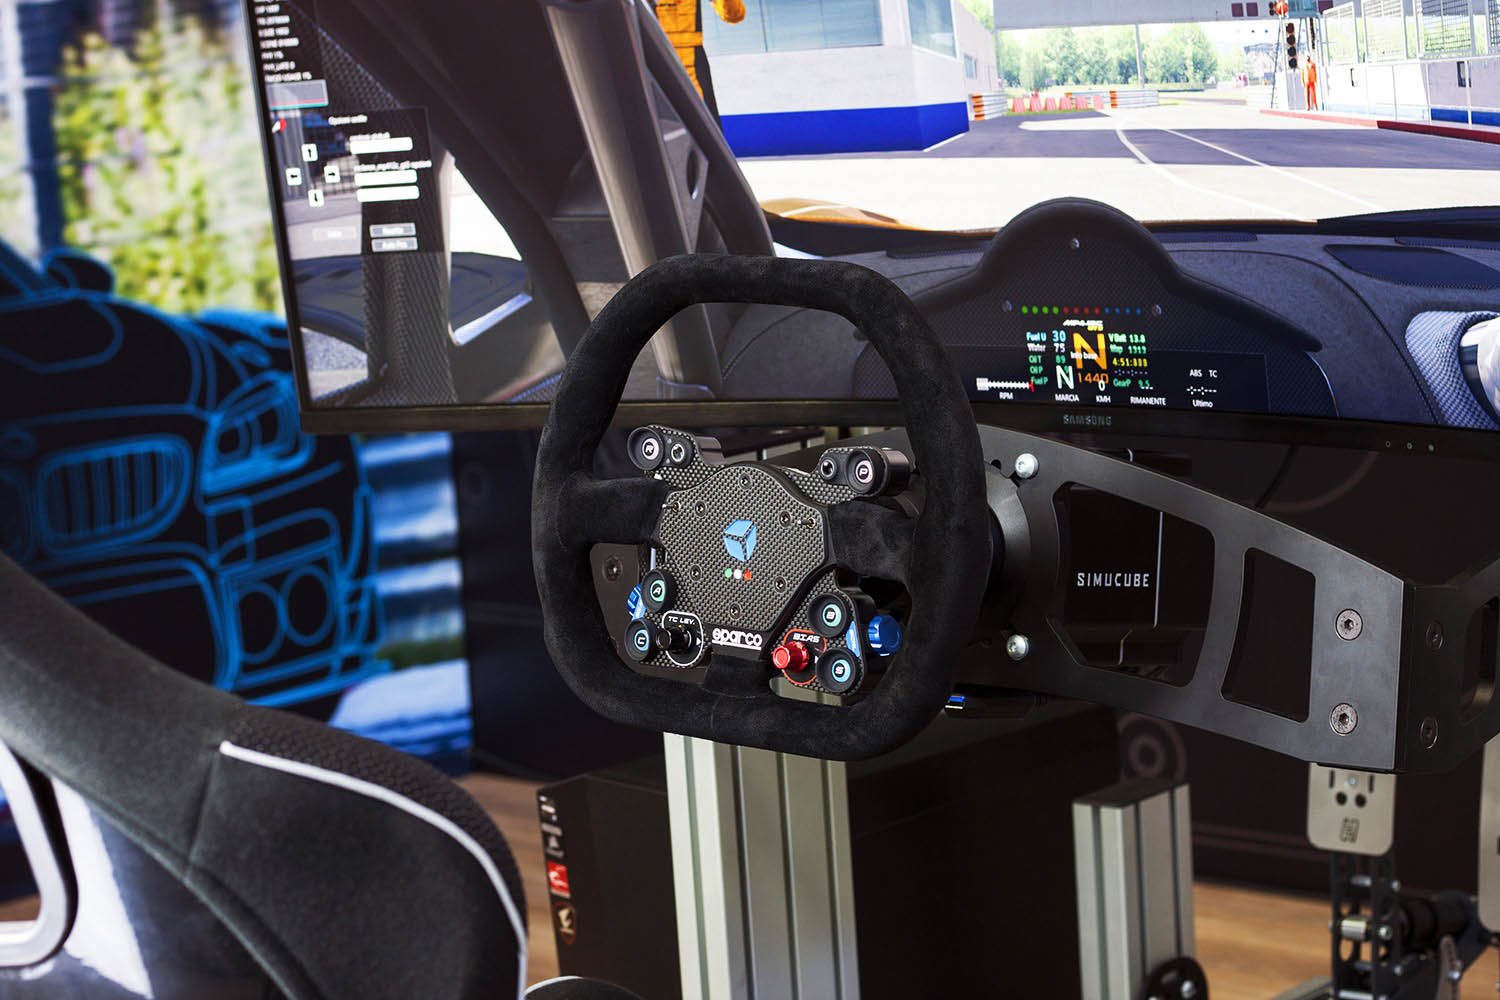 shop.gperformance.eu - Cube Controls GT Pro Sparco Wireless - Simucube 2 eSports wheel - installed